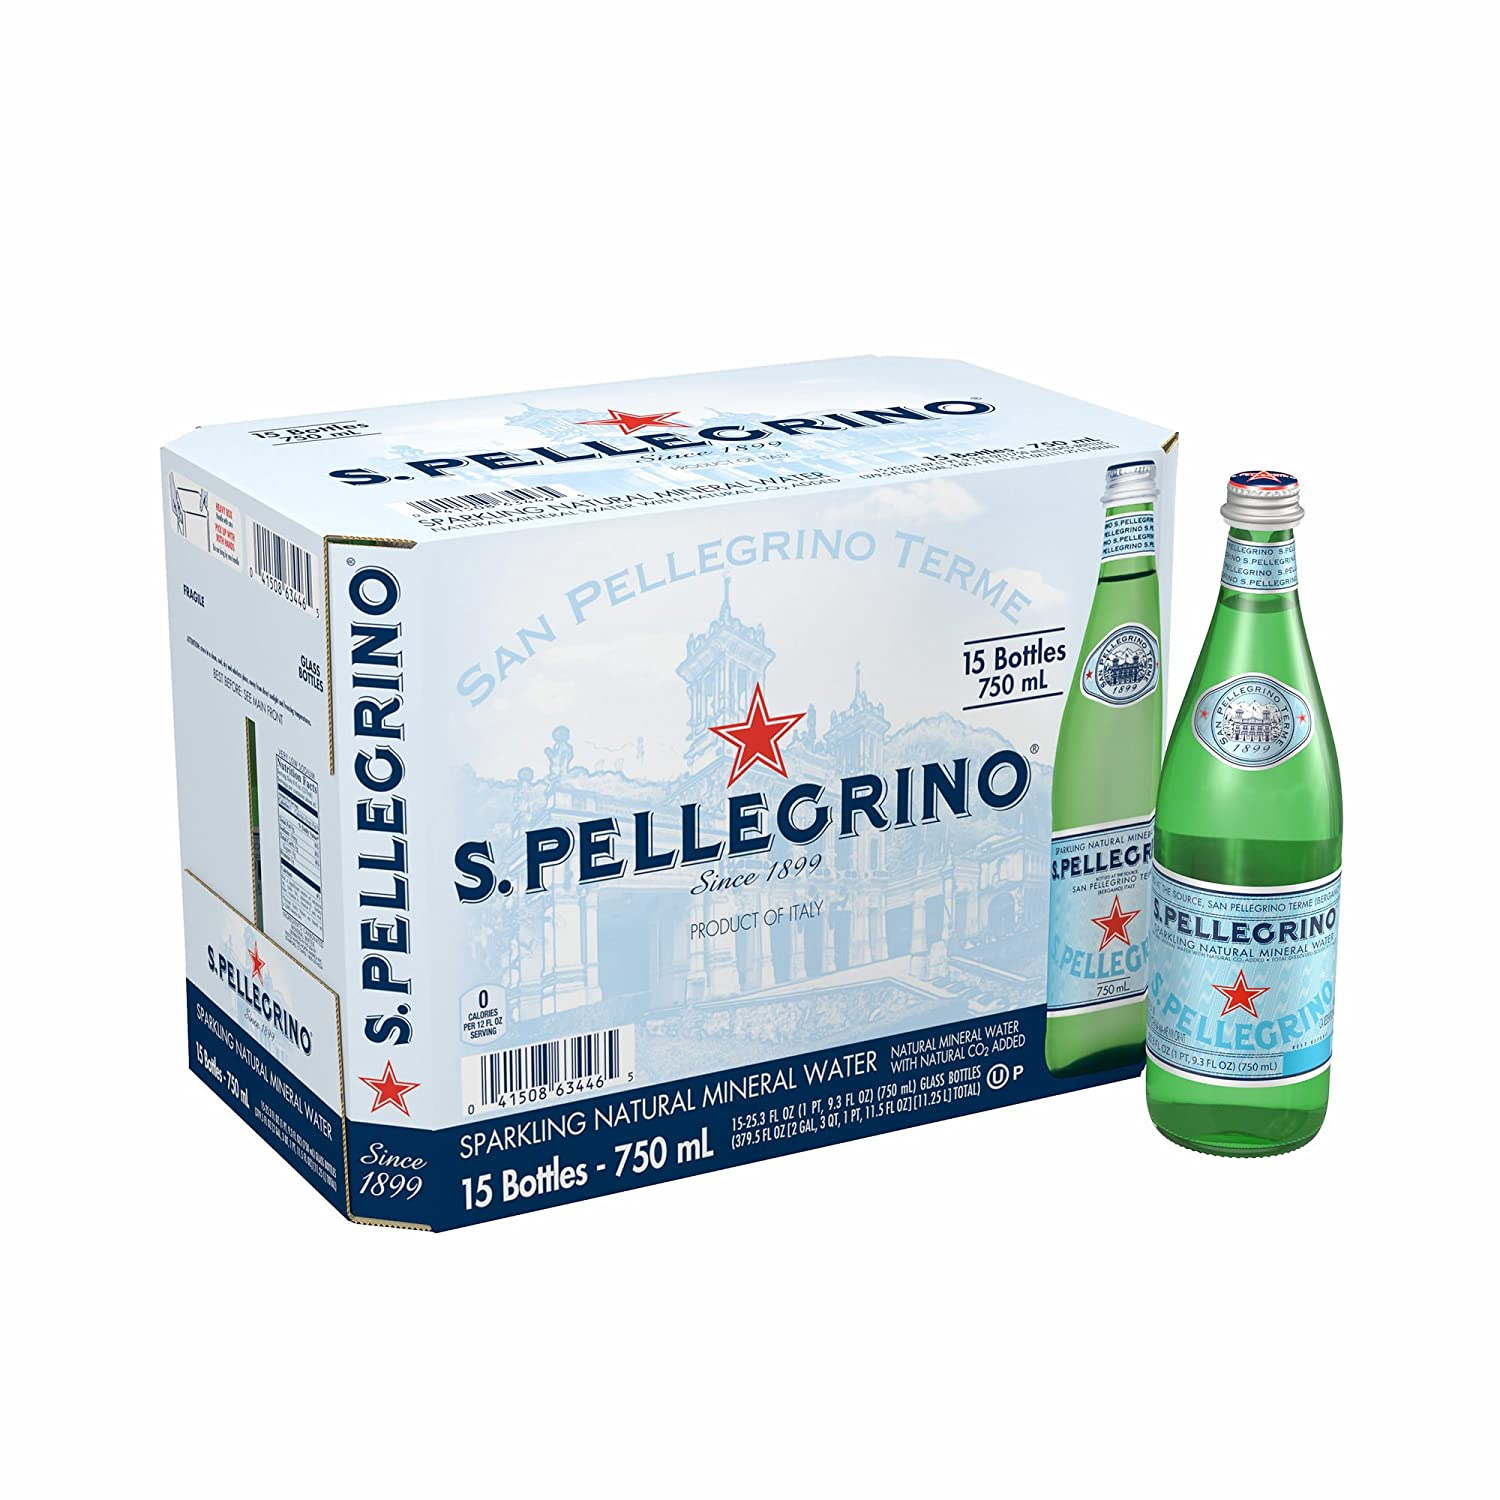 San Pellegrino Sparkling Award Recommended Mineral Water 25.3 oz